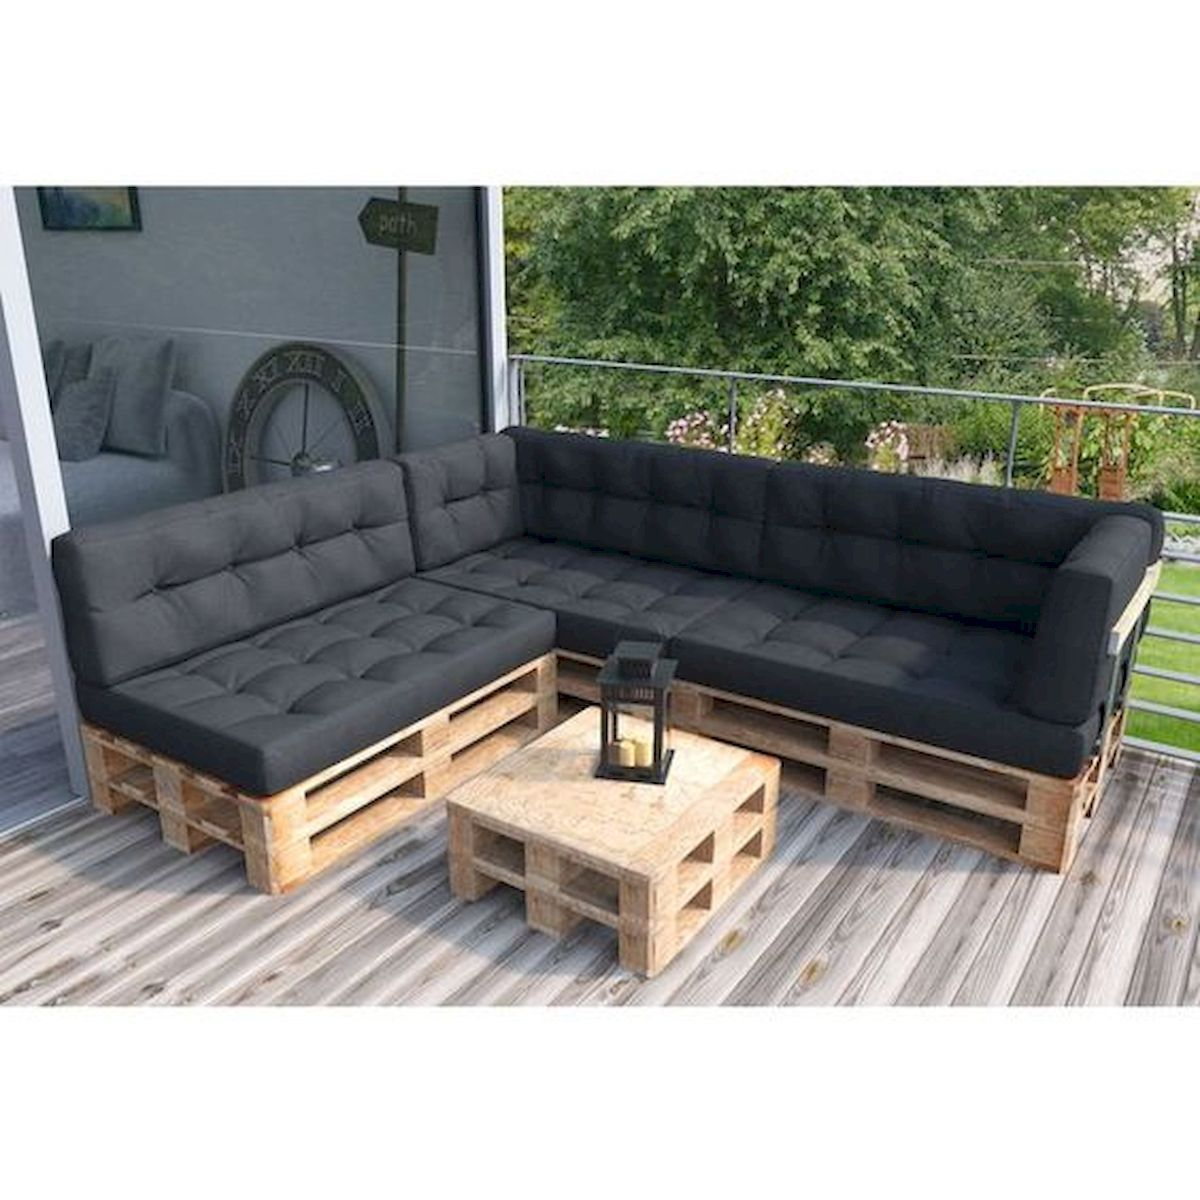 60 Ohromujici Projekty Diy Napady Na Design Palety 31 Pallet Cushions Diy Outdoor Furniture Sofa Design